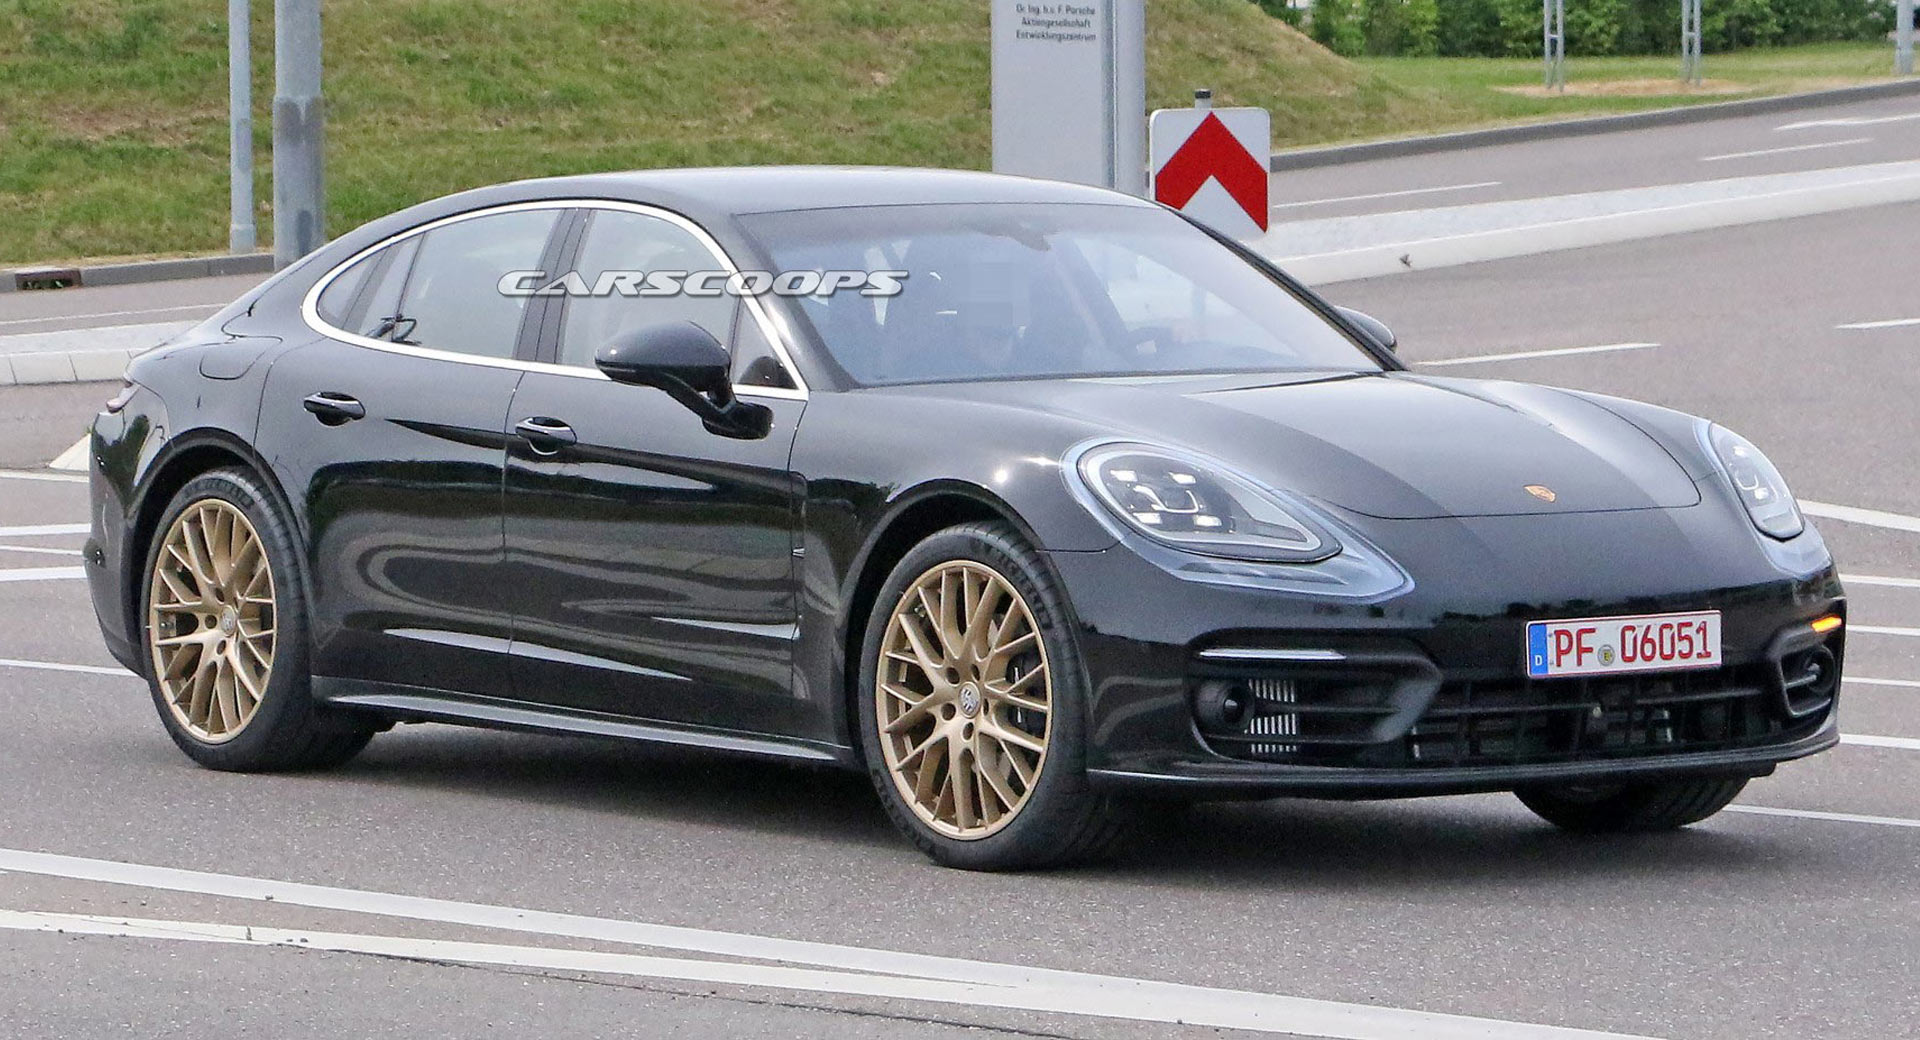 2021 Porsche Panamera Sports Golden Wheels Barely Noticeable Styling Changes Carscoops